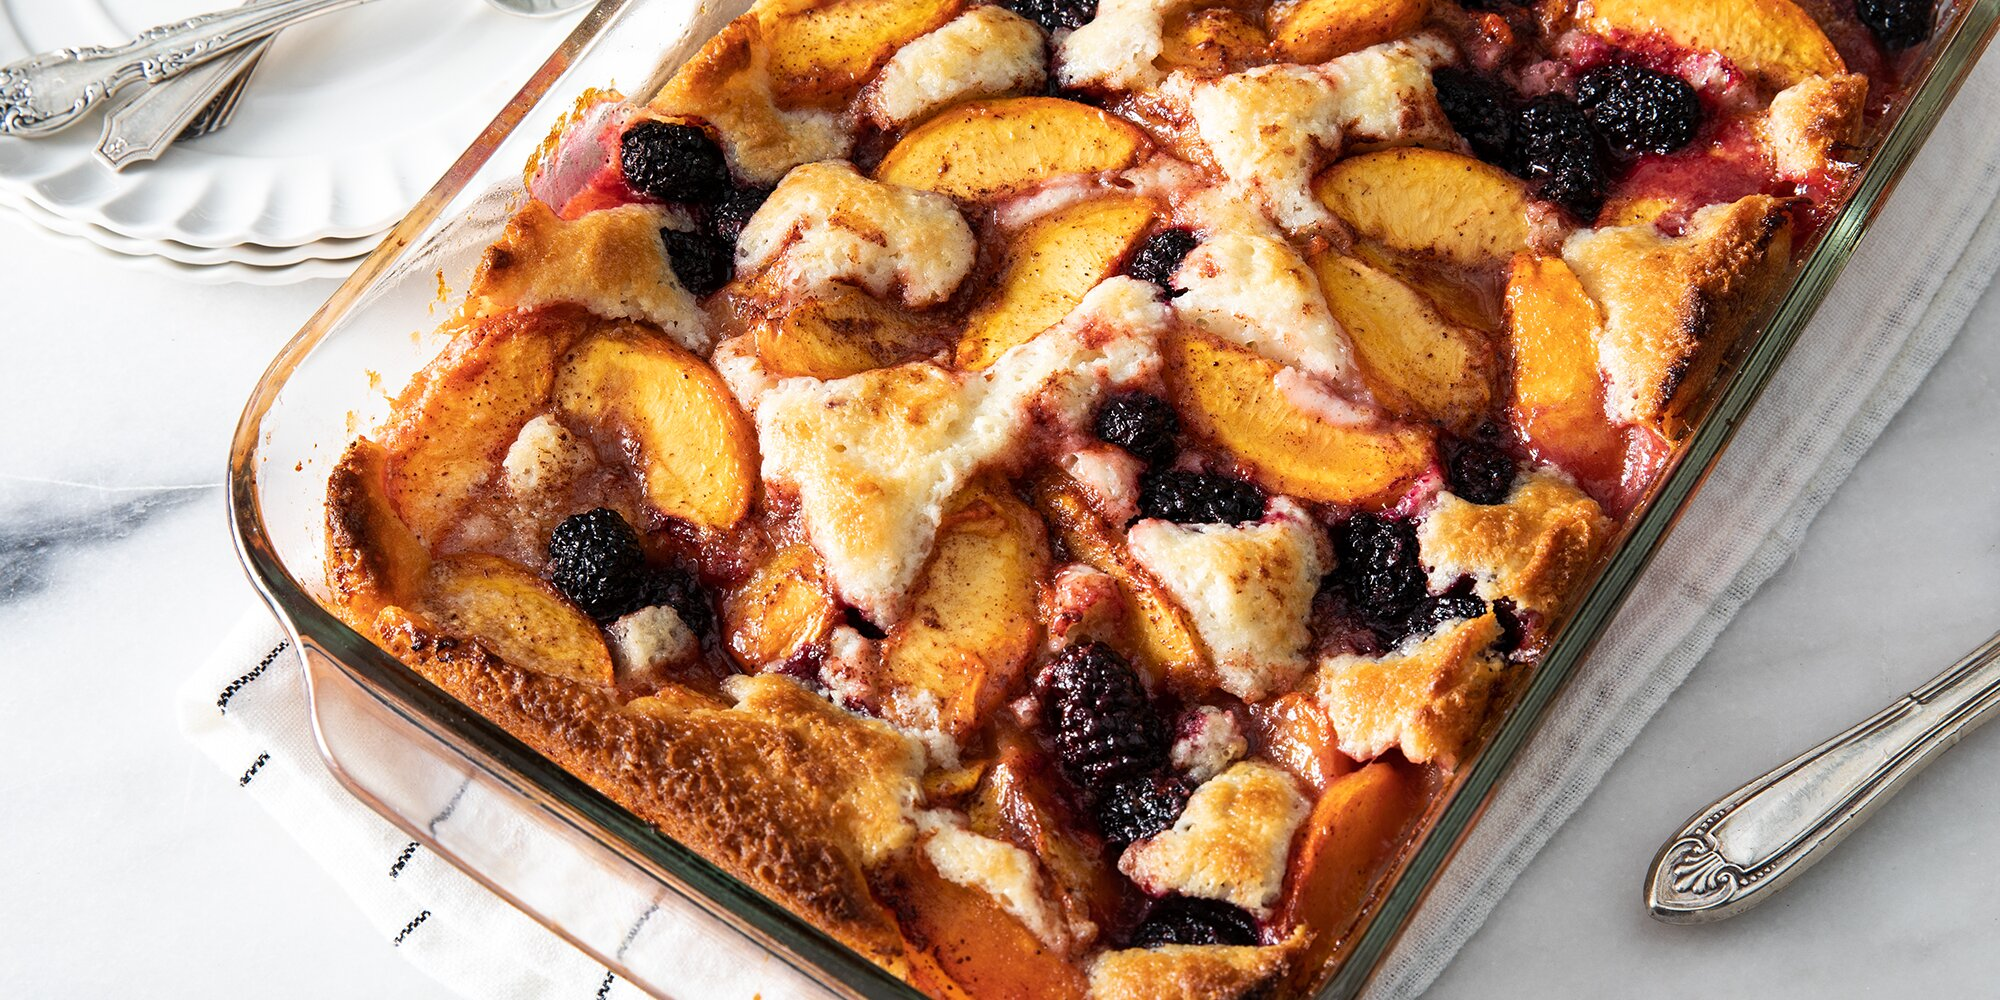 What Is the Difference Between a Cobbler, Crisp, and Crumble?